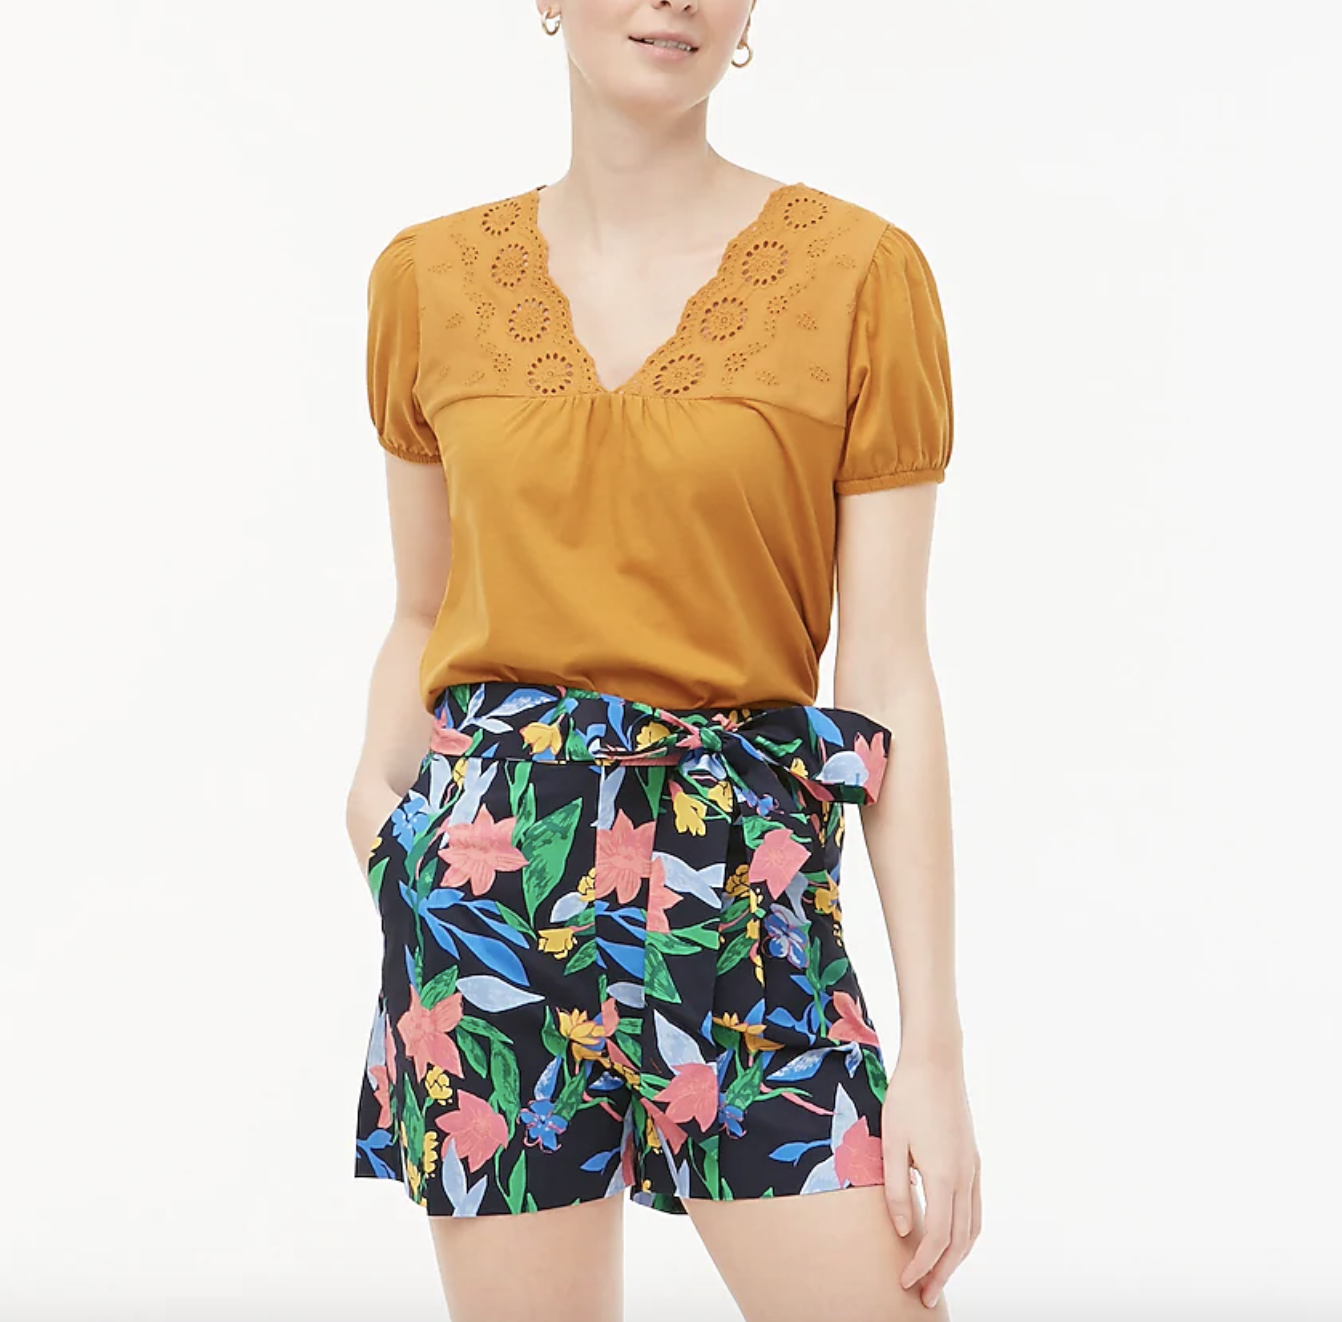 the shorts, which are black with a floral pattern